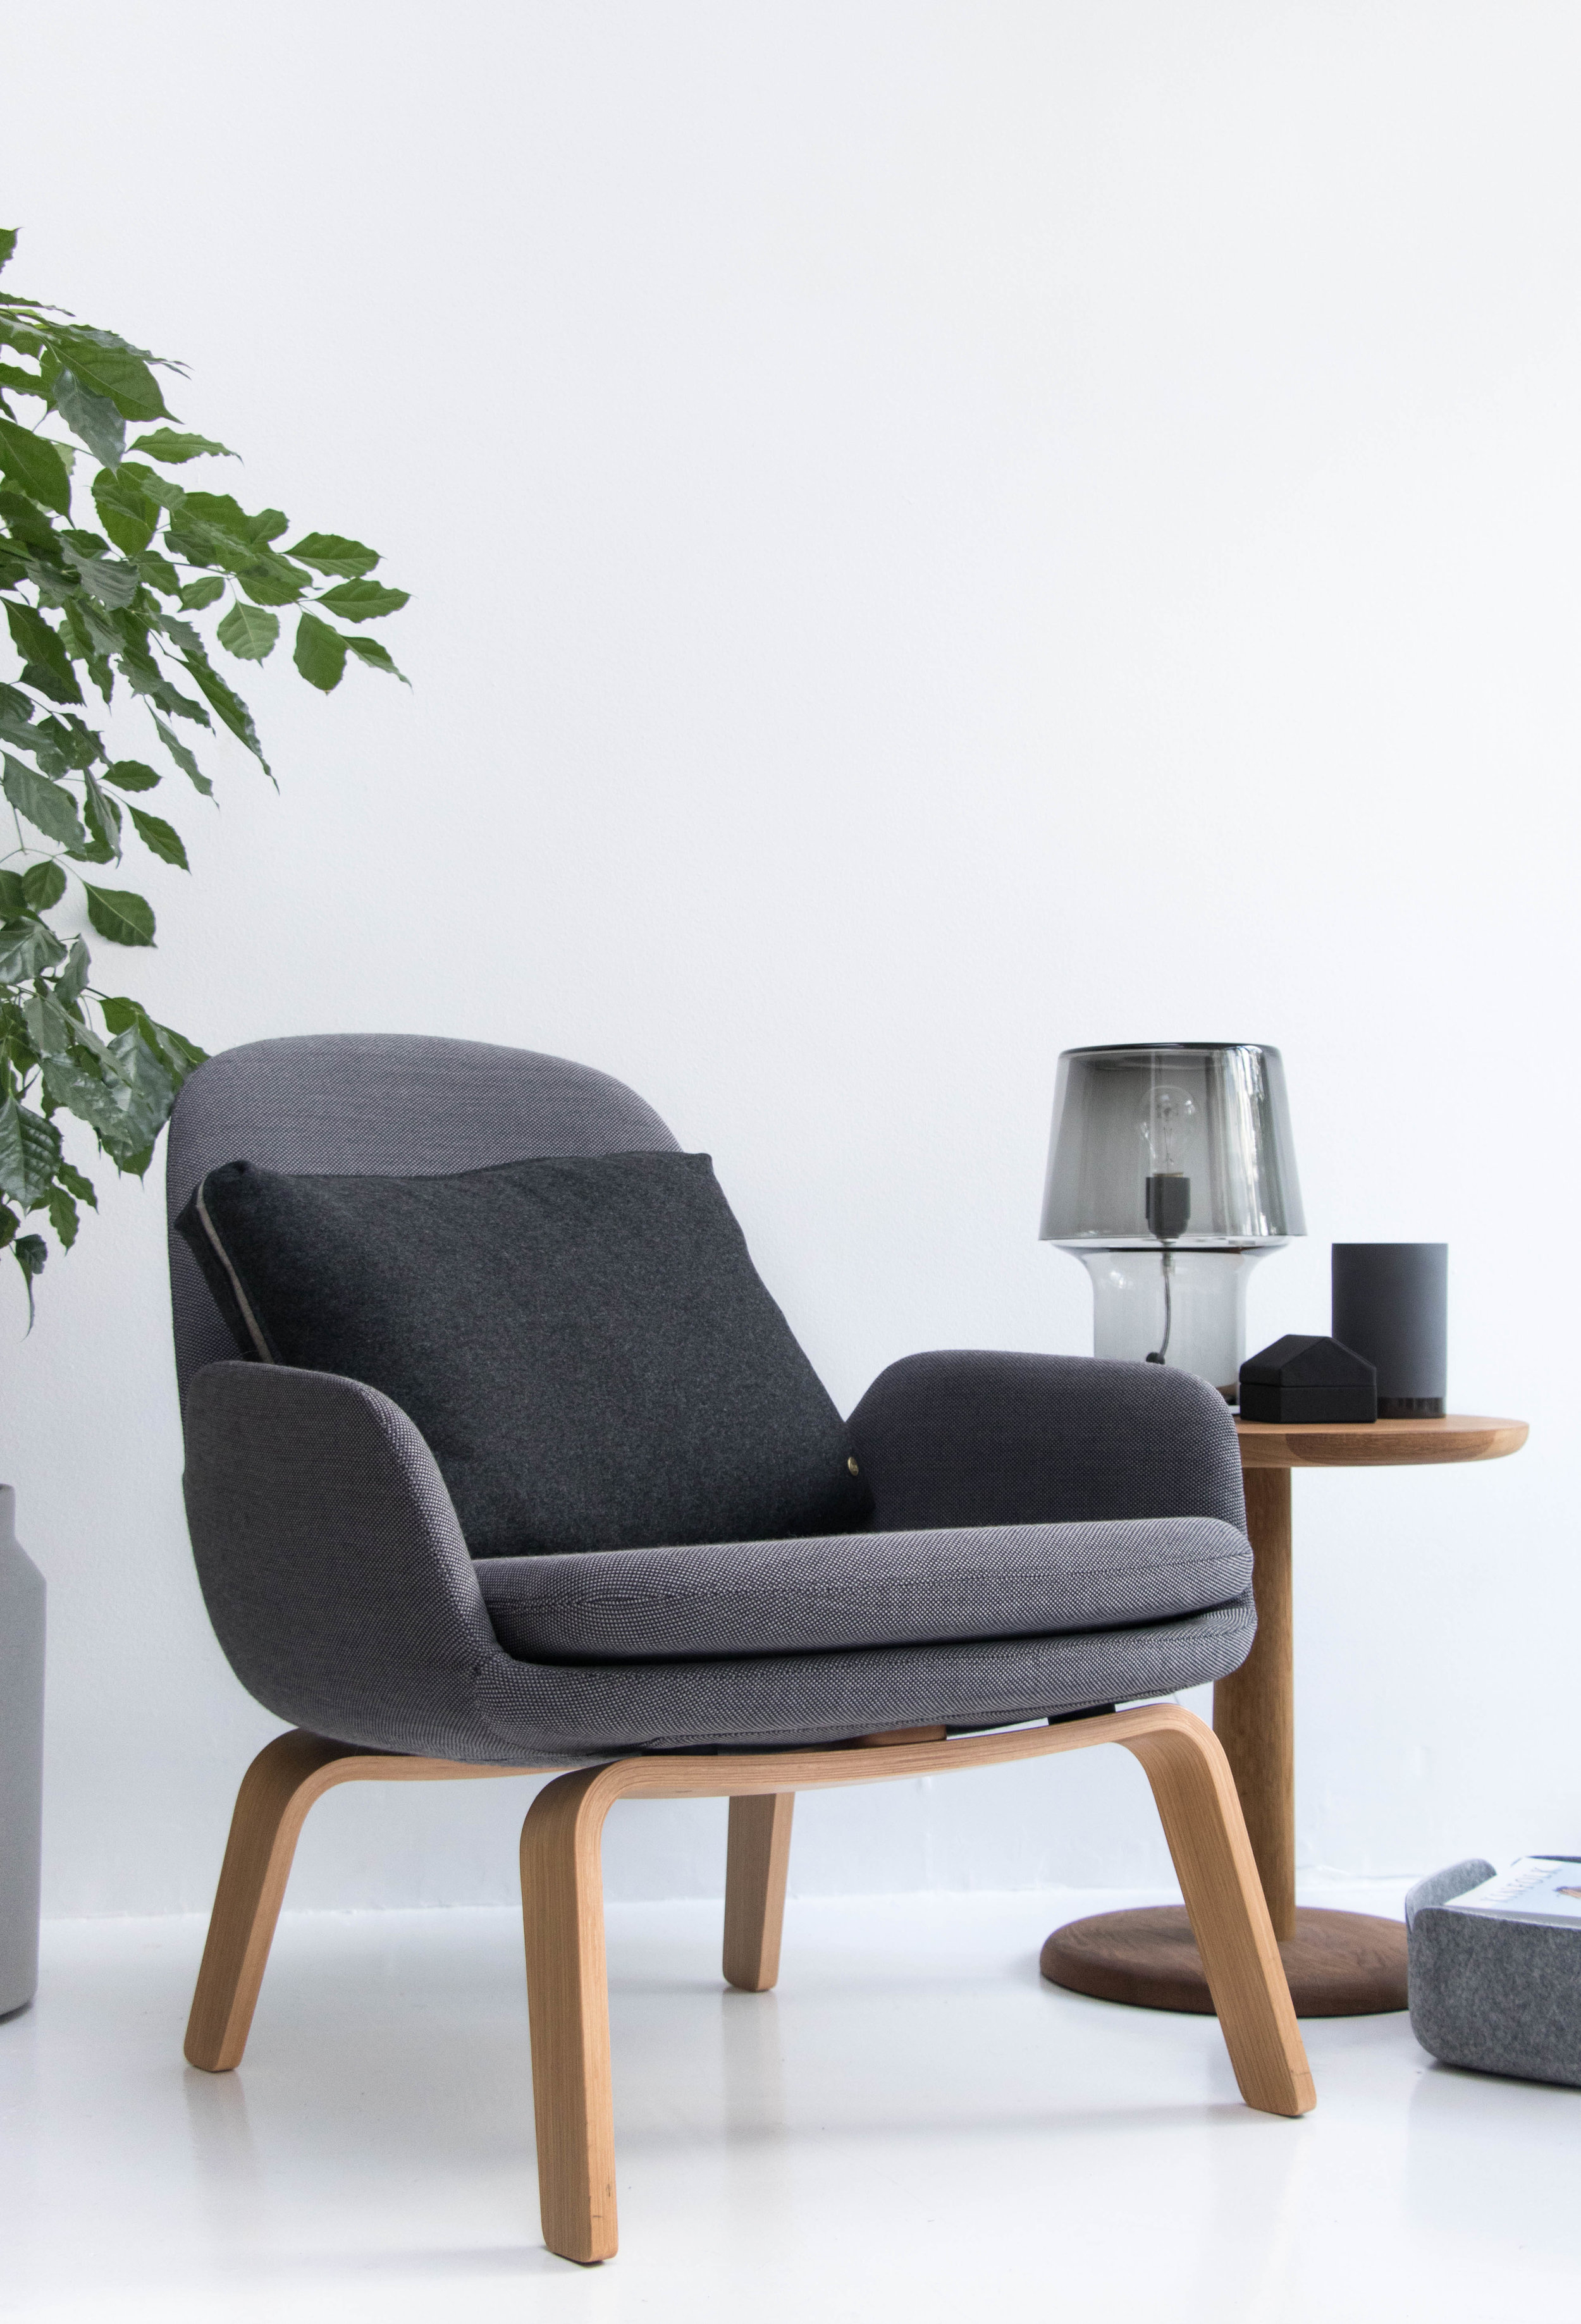 Classic, inviting, nostalgic and curved - With its streamlined design and high quality, Era is a durable, long-lasting and versatile collection that easily accommodates modern interior's need for flexibility.The wide, molded cushion and the curves along the back of the chairs ensure a fantastic sitting comfort. No matter if you use Era as a reading chair, to watch TV in, when browsing on the internet or even to take a nap in, Era is comfortable for hours on end.